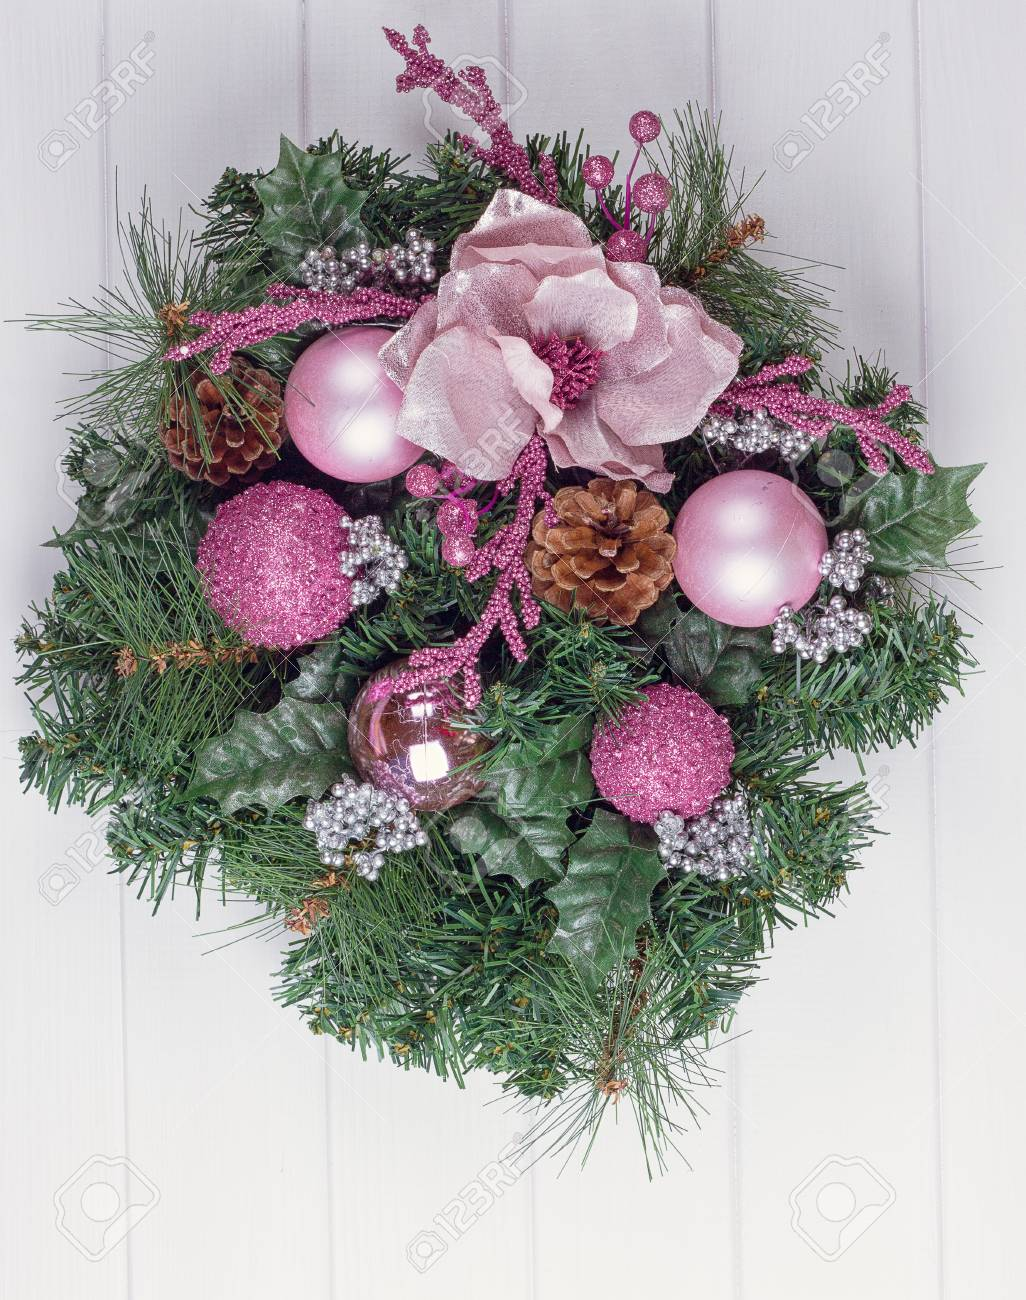 Christmas Wreath On A Rustic White Wooden Front Door Stock Photo